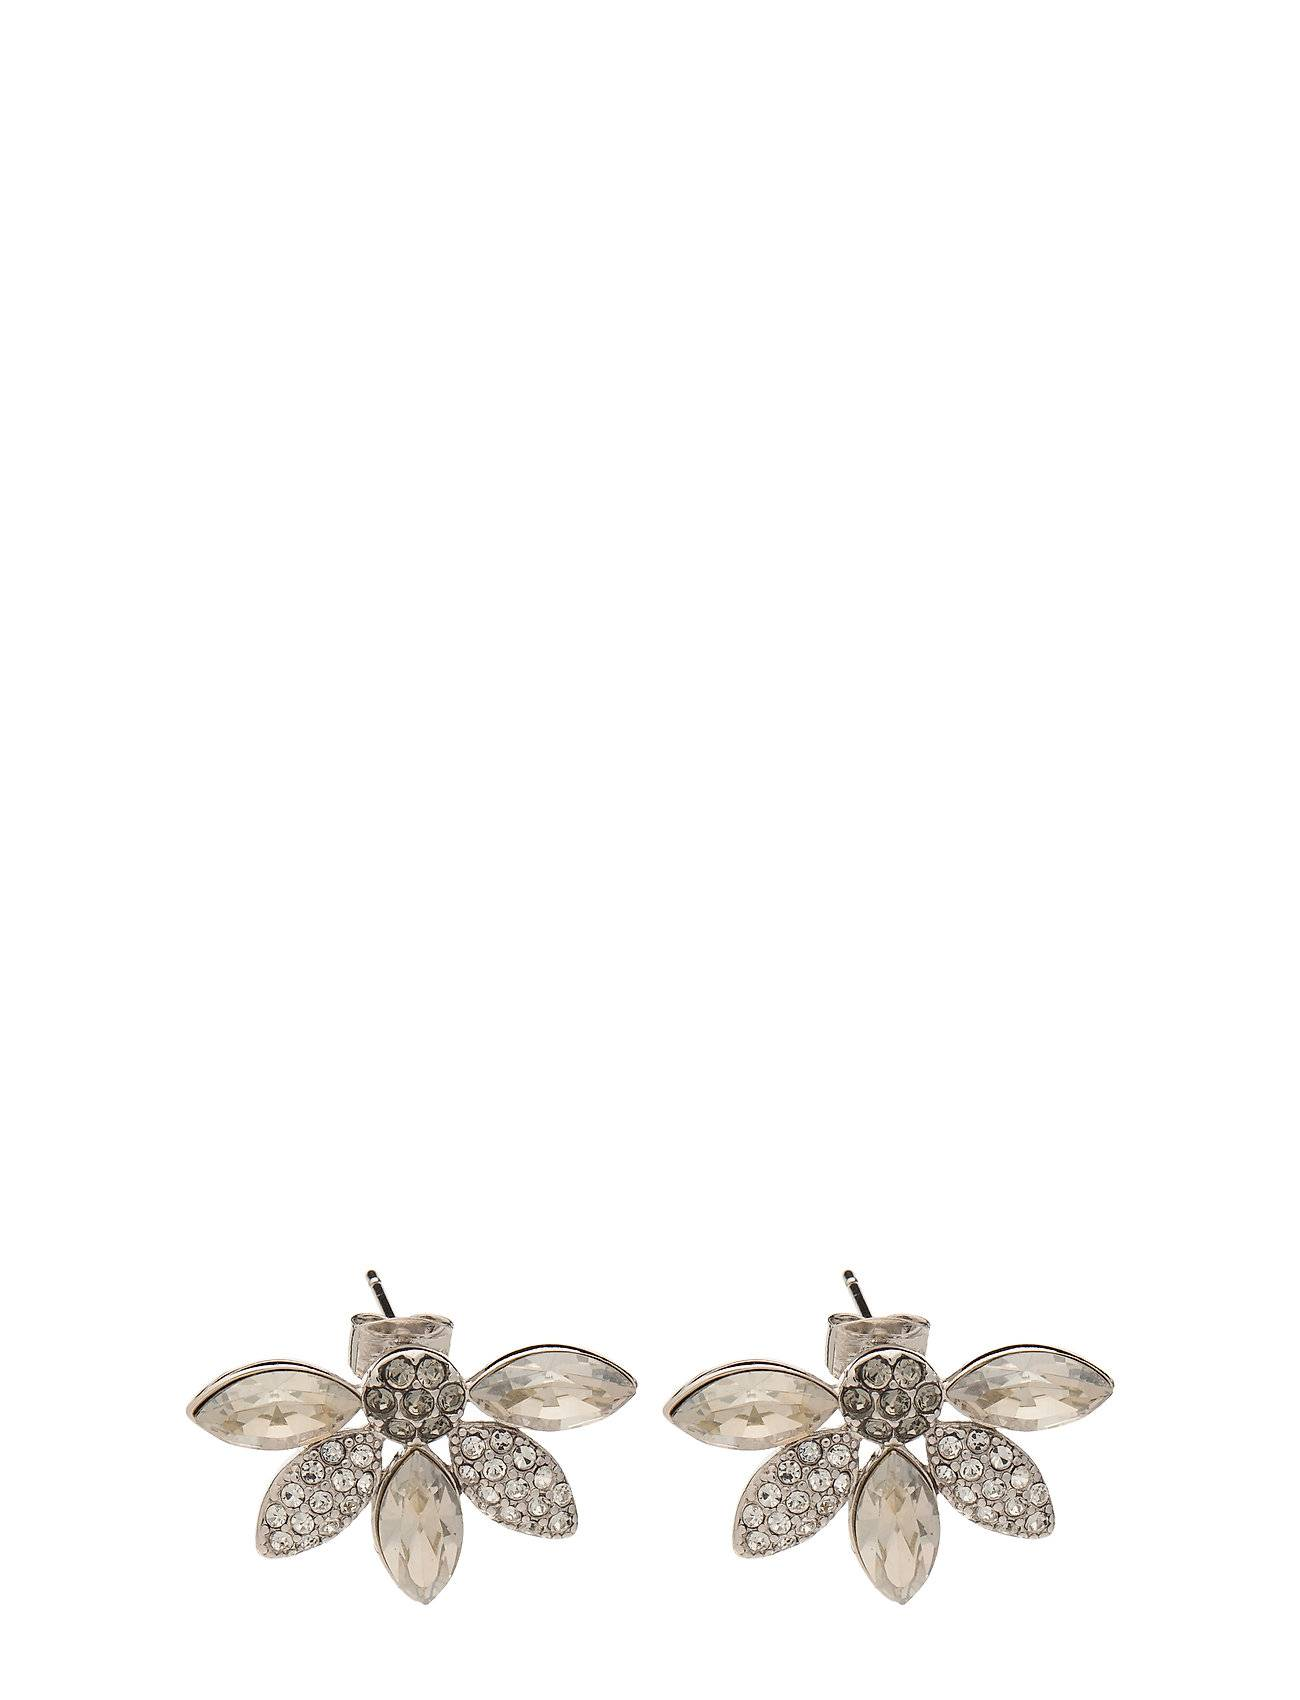 LILY AND ROSE Lucia Earrings - Silvershade Accessories Jewellery Earrings Studs Hopea LILY AND ROSE